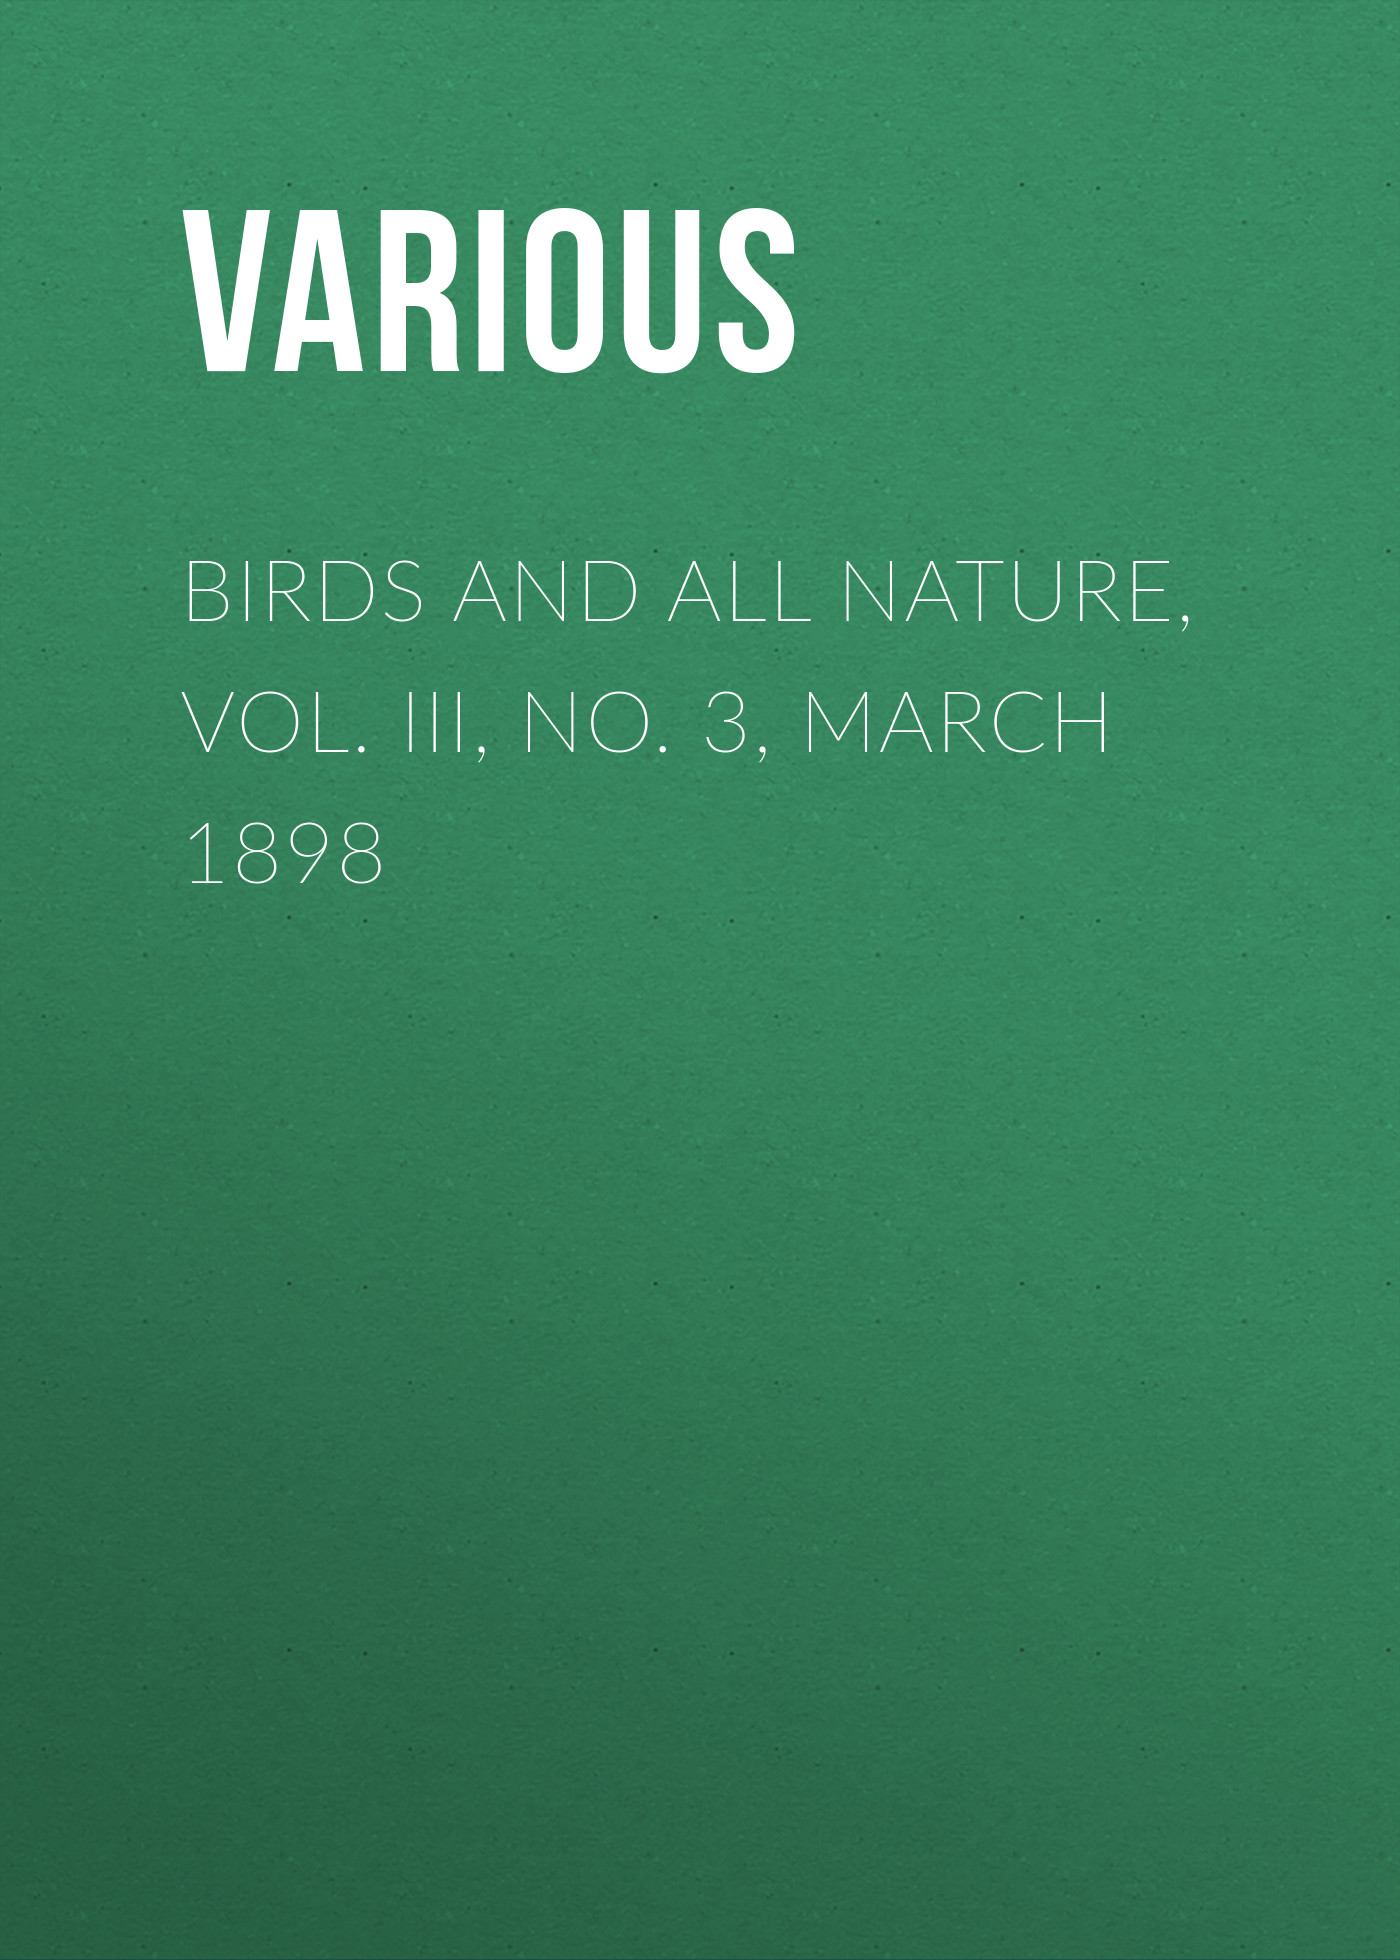 Various Birds and All Nature, Vol. III, No. 3, March 1898